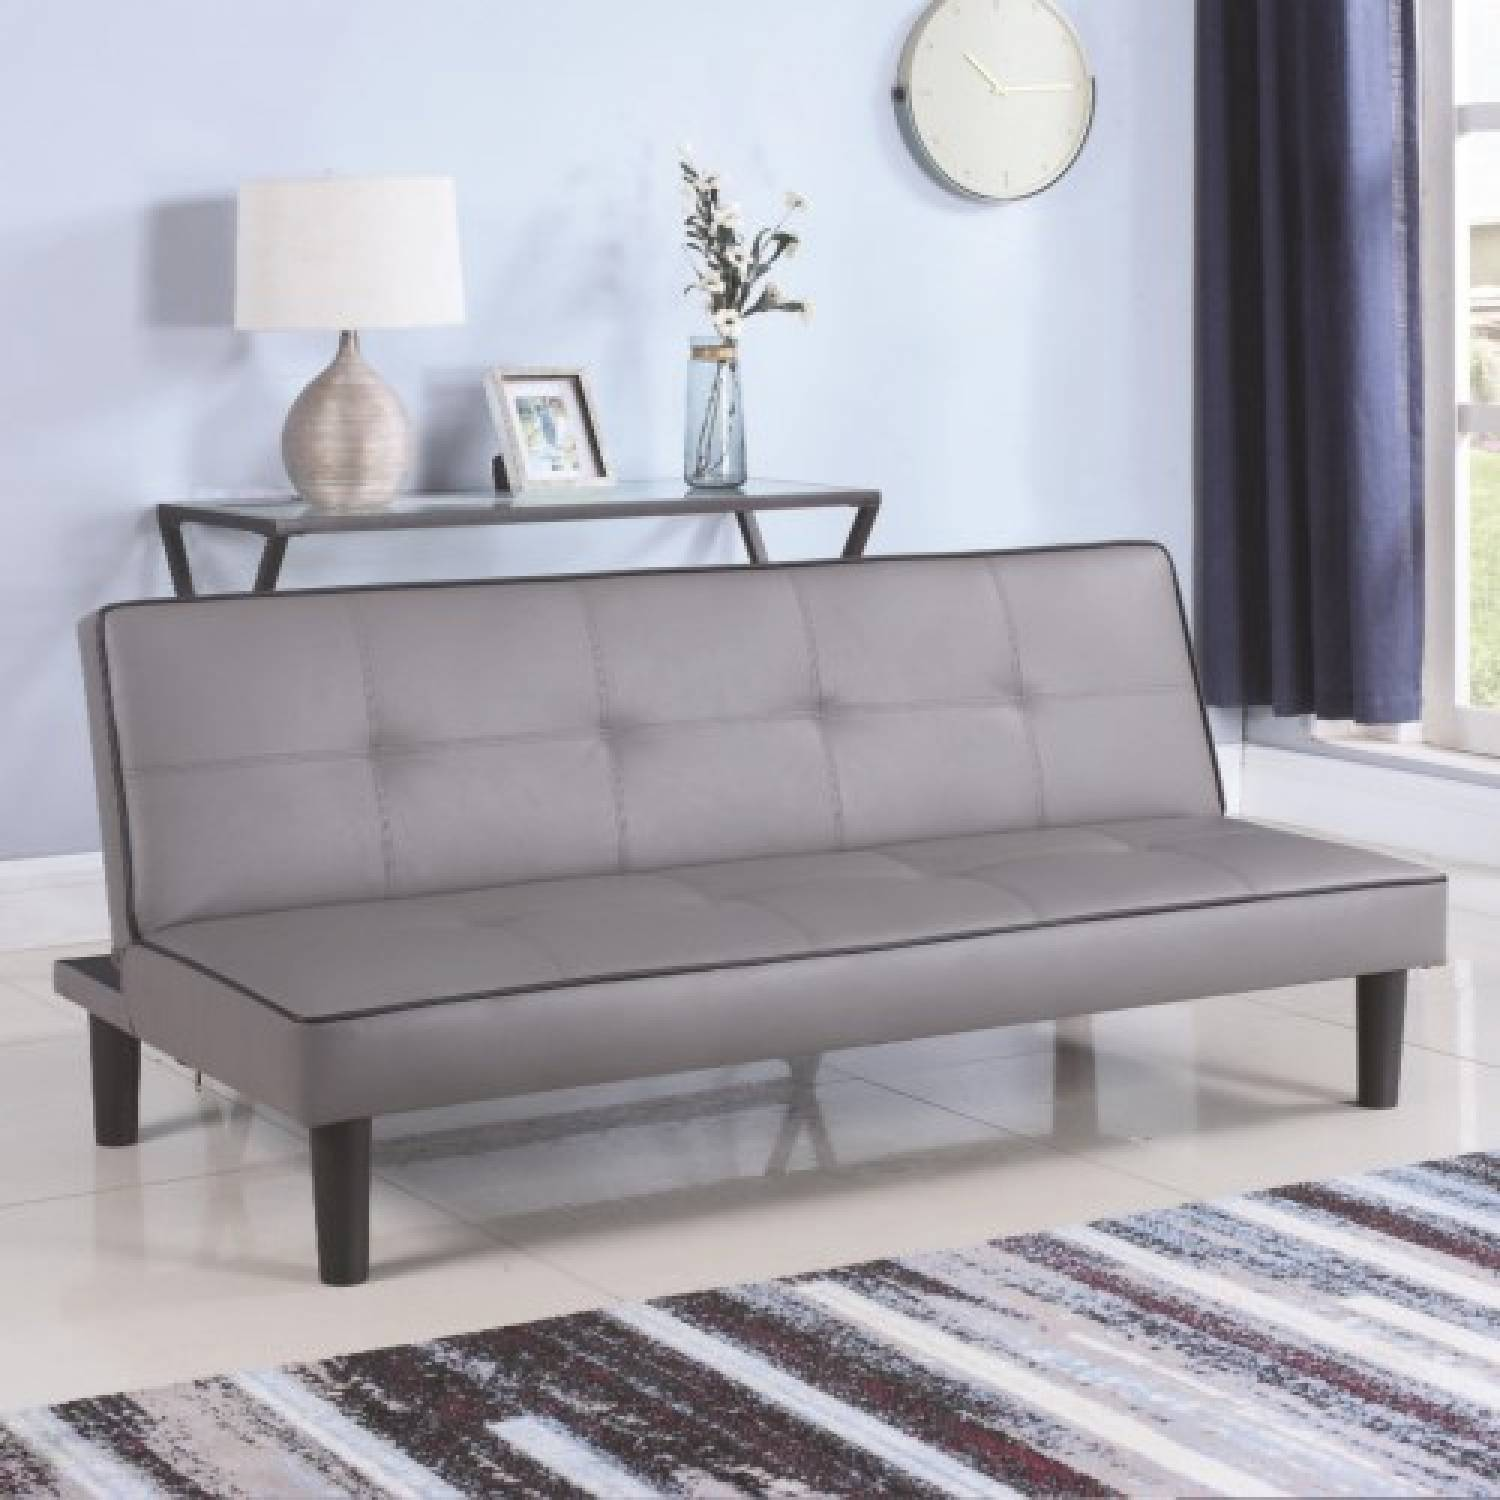 Futons Leatherette Sofa Bed Piping